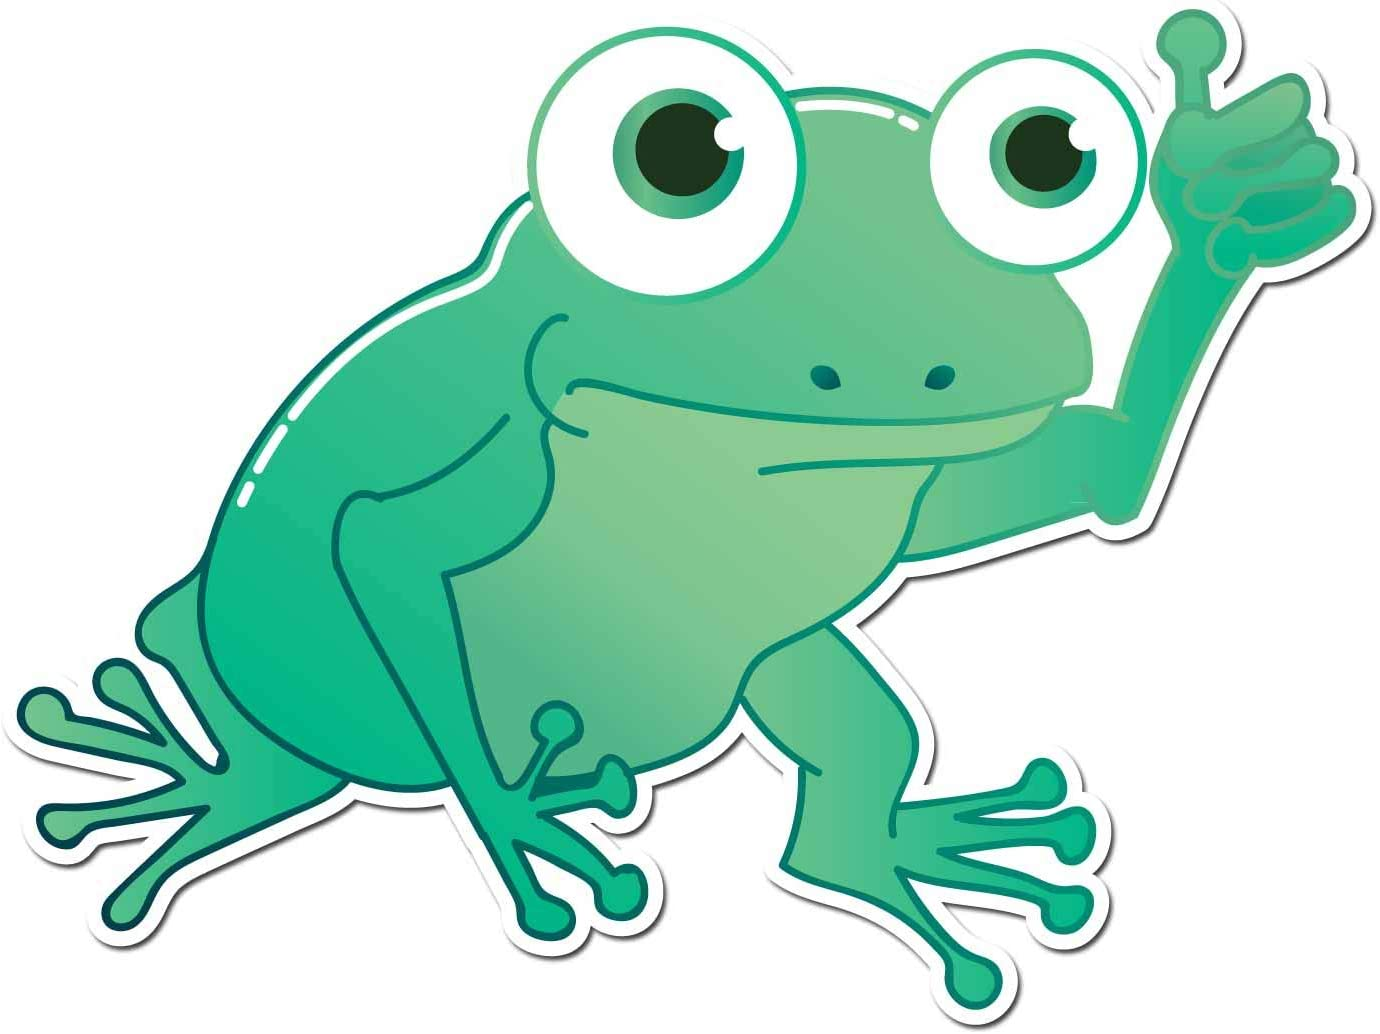 Amazon.com: DOOMSDAYDECALS Silly Little Frog Thumbs Up - Full Color Vinyl  Decal for Car Window, Exterior (6 Inch): Automotive